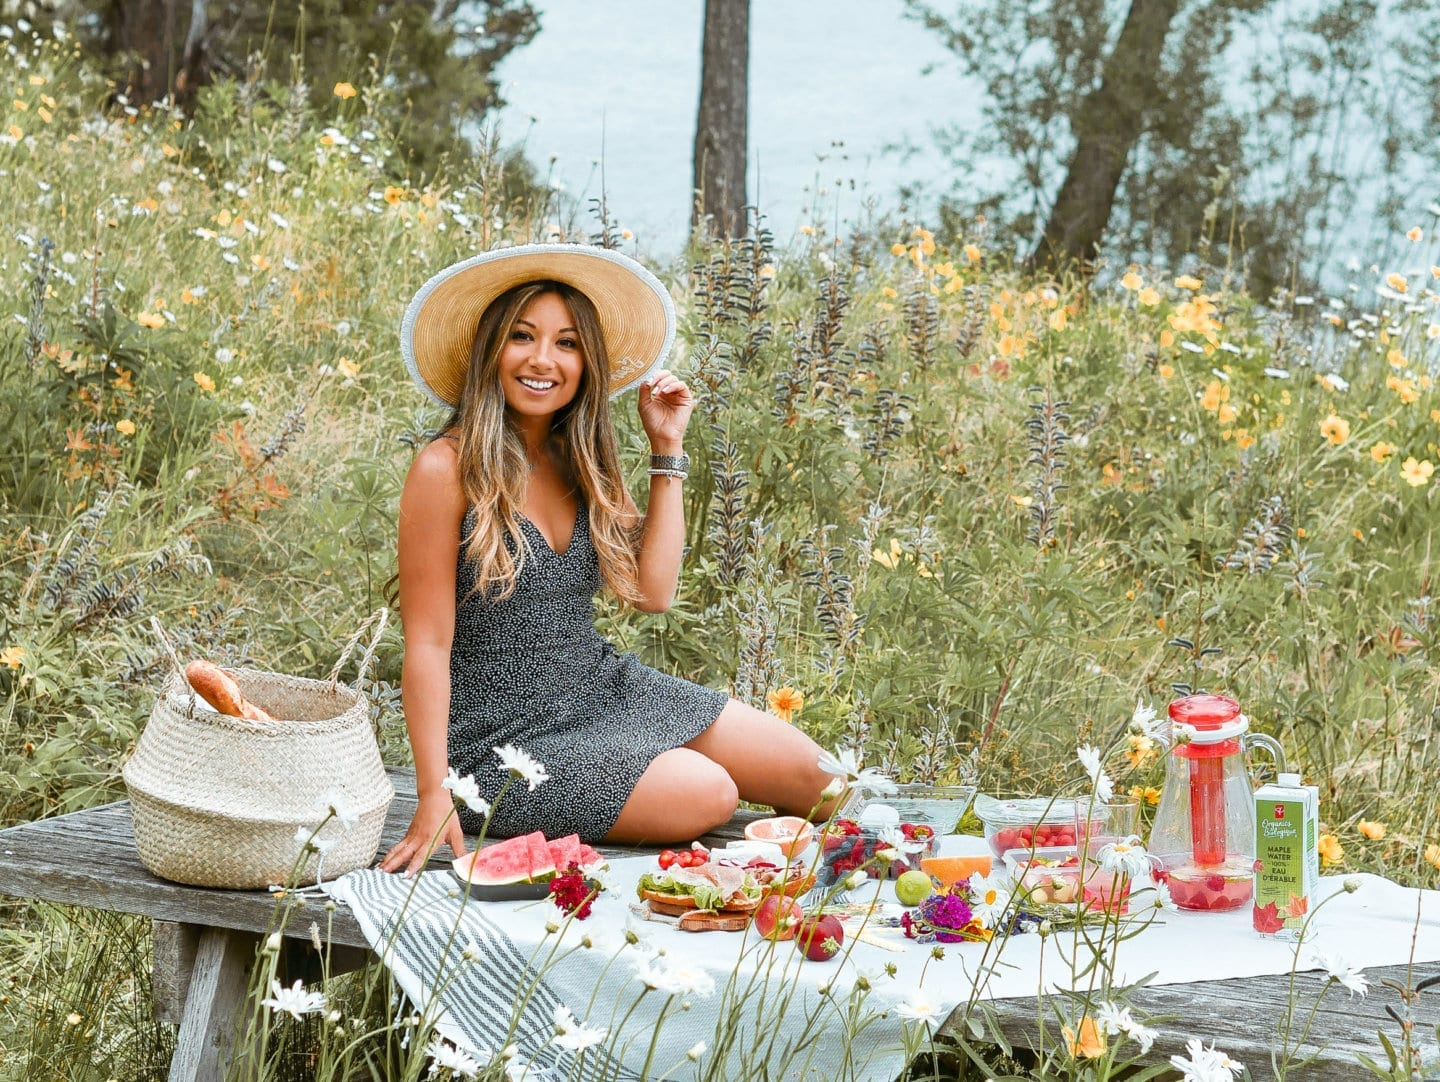 Essentials For The Perfect Summer Picnic